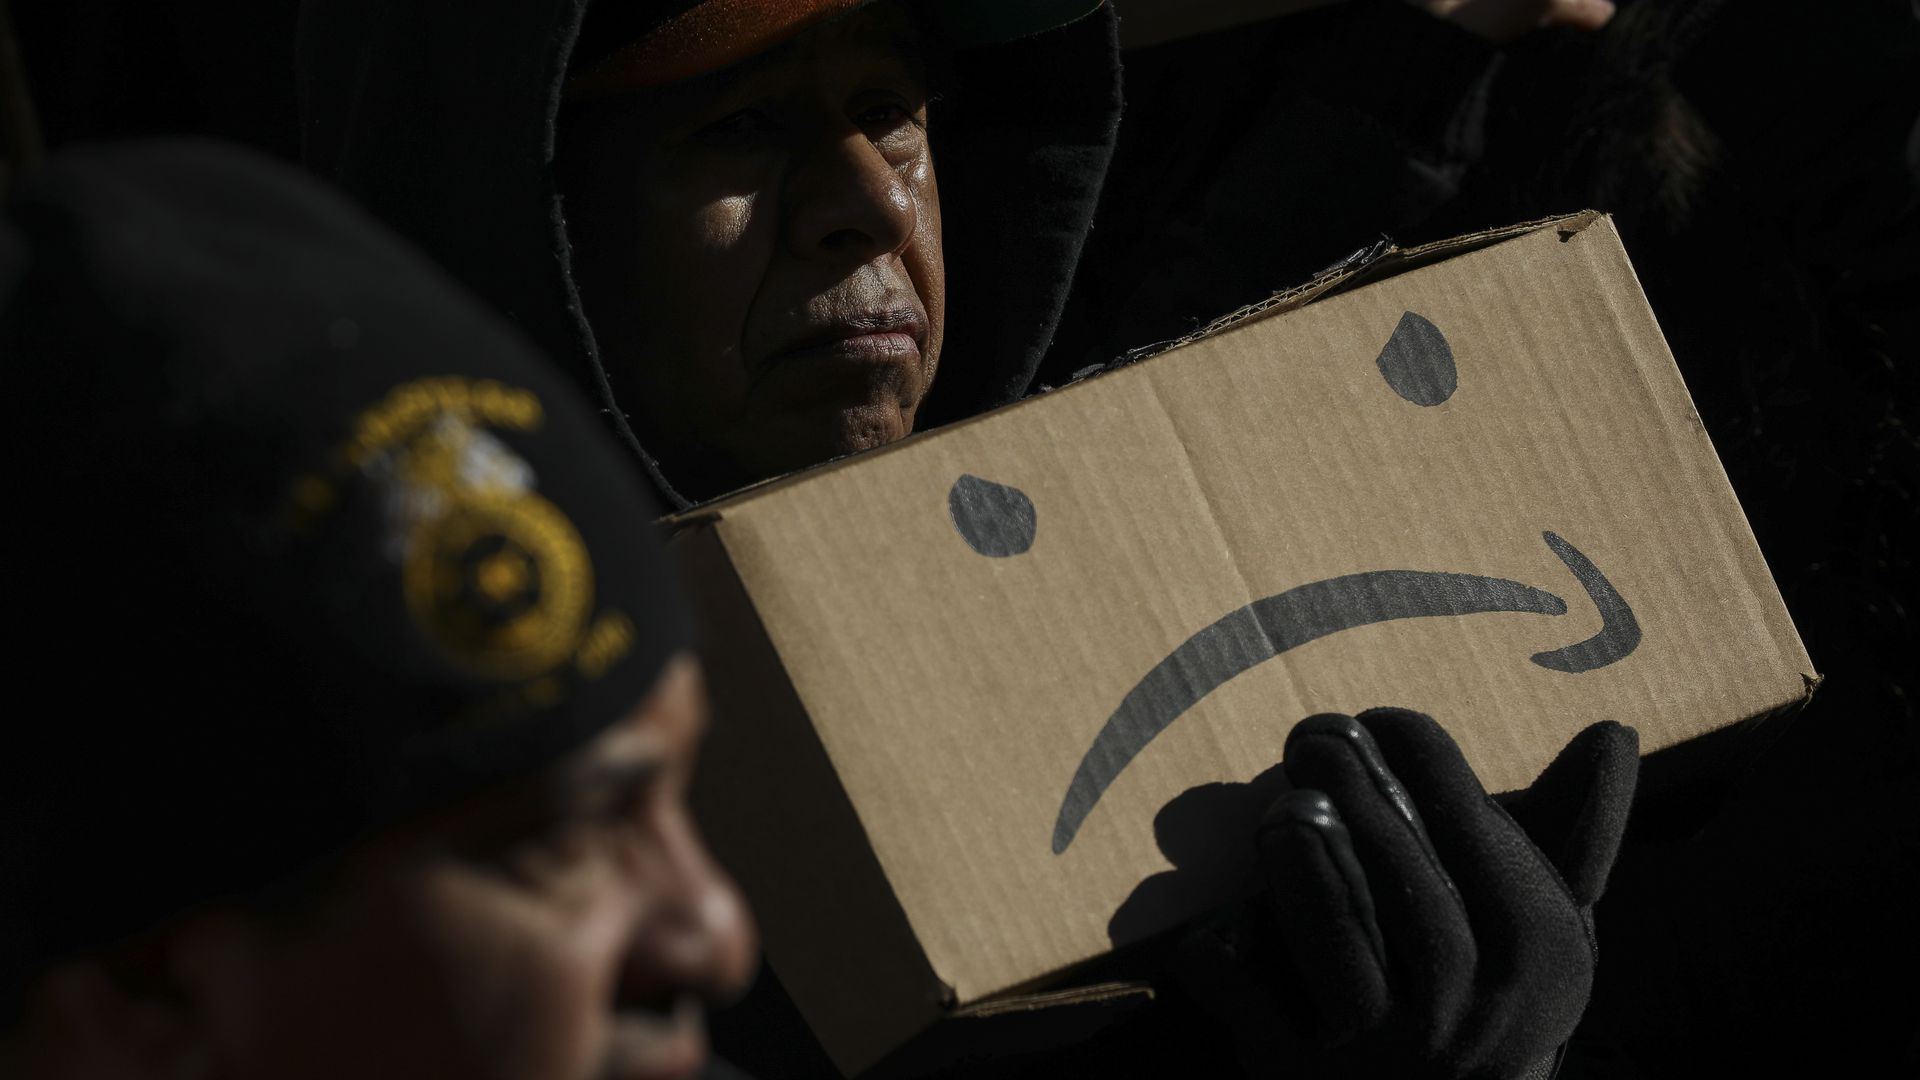 A man holds an upside-down Amazon logo with two eyes, made to look like a sad face